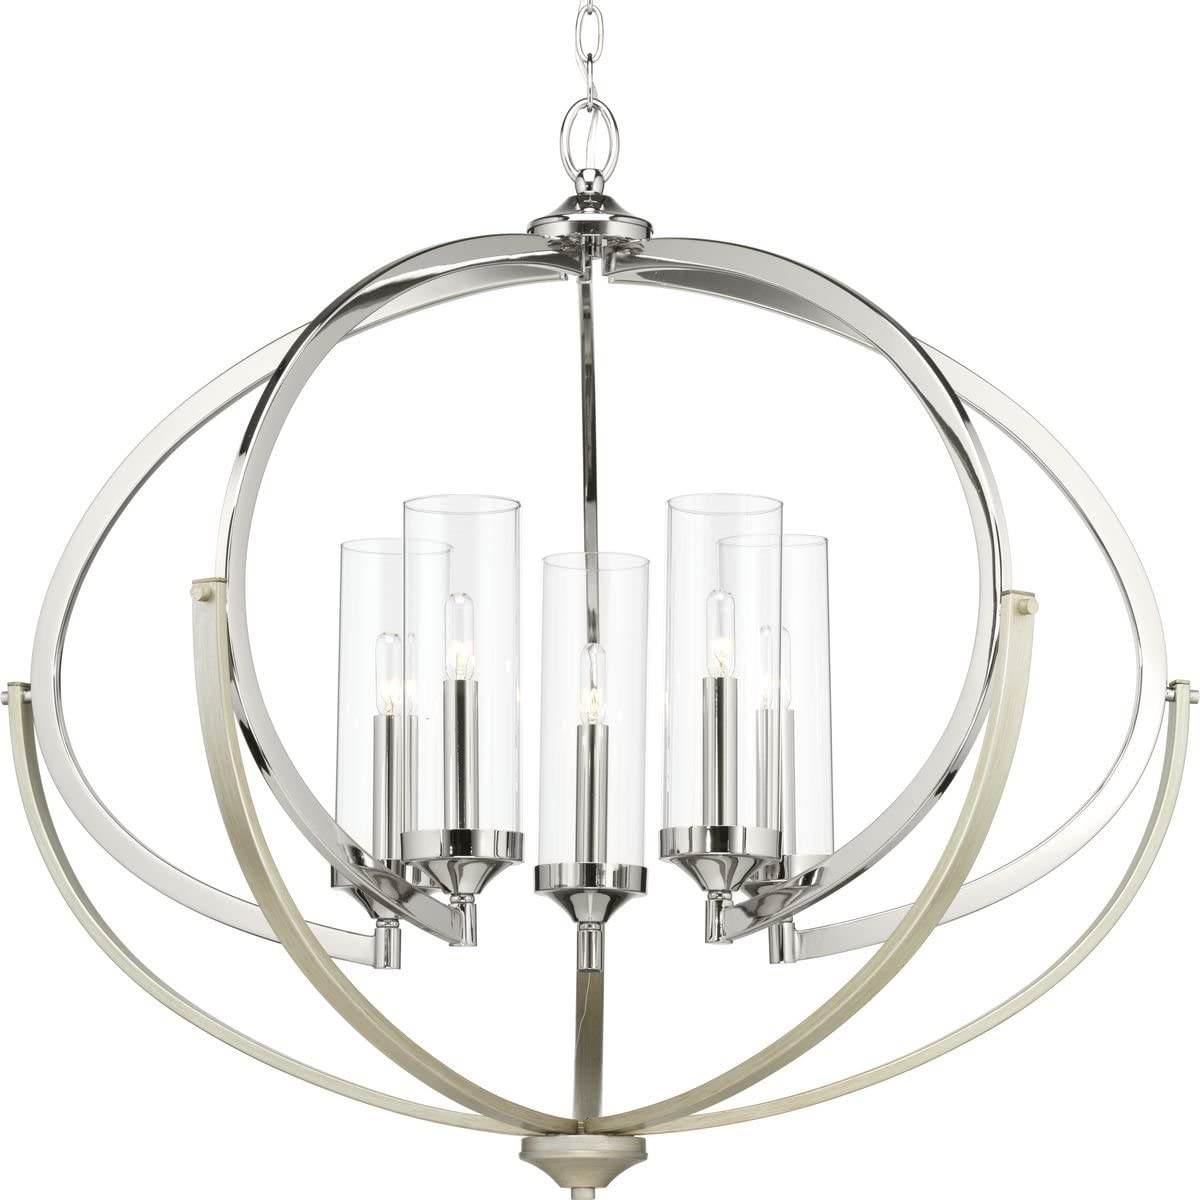 Progress Lighting P400117-104 Chandeliers, Polished Nickel